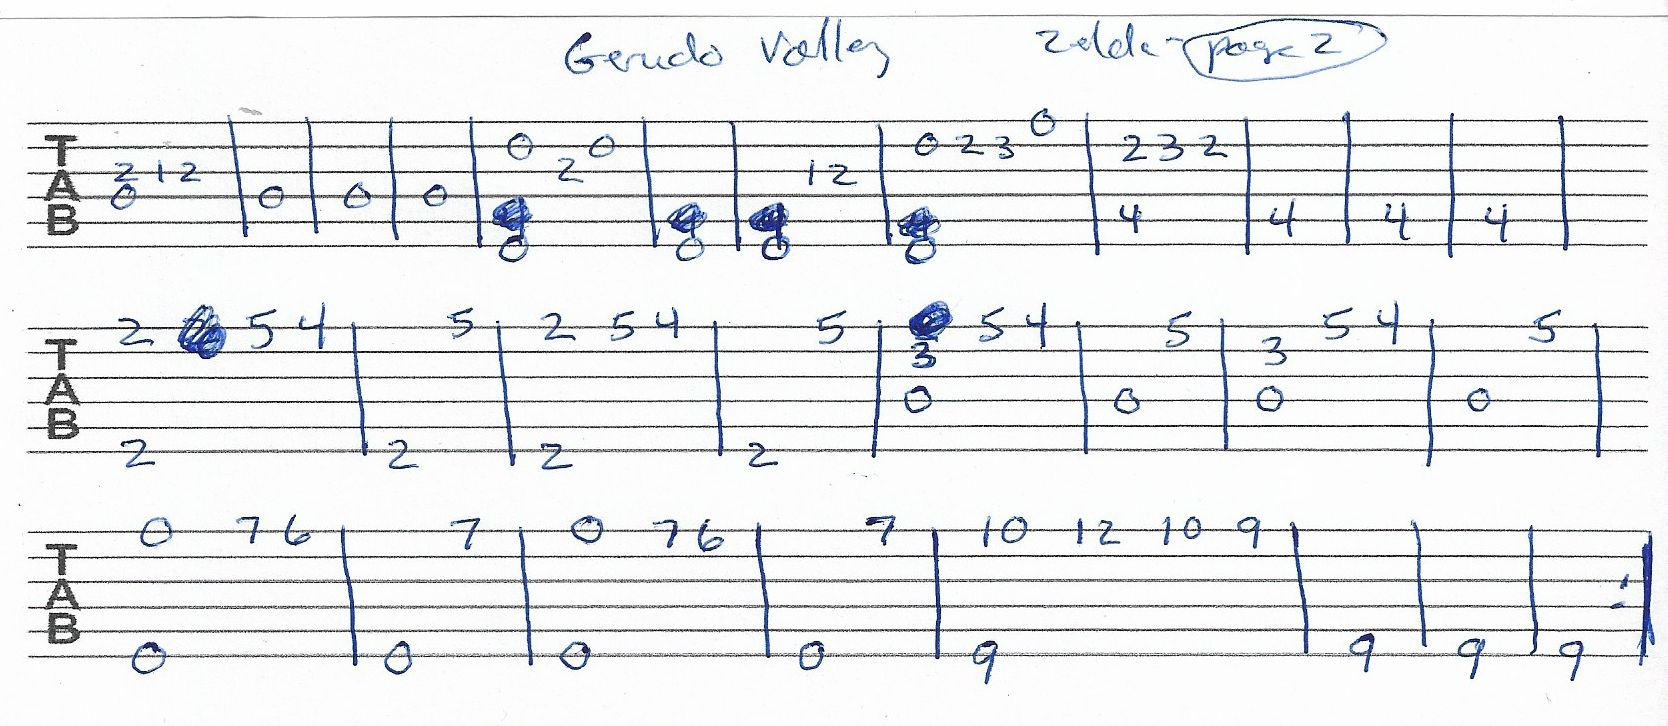 Gerudo Valley Zelda Guitar Tab Page 2 Of 2 With Images